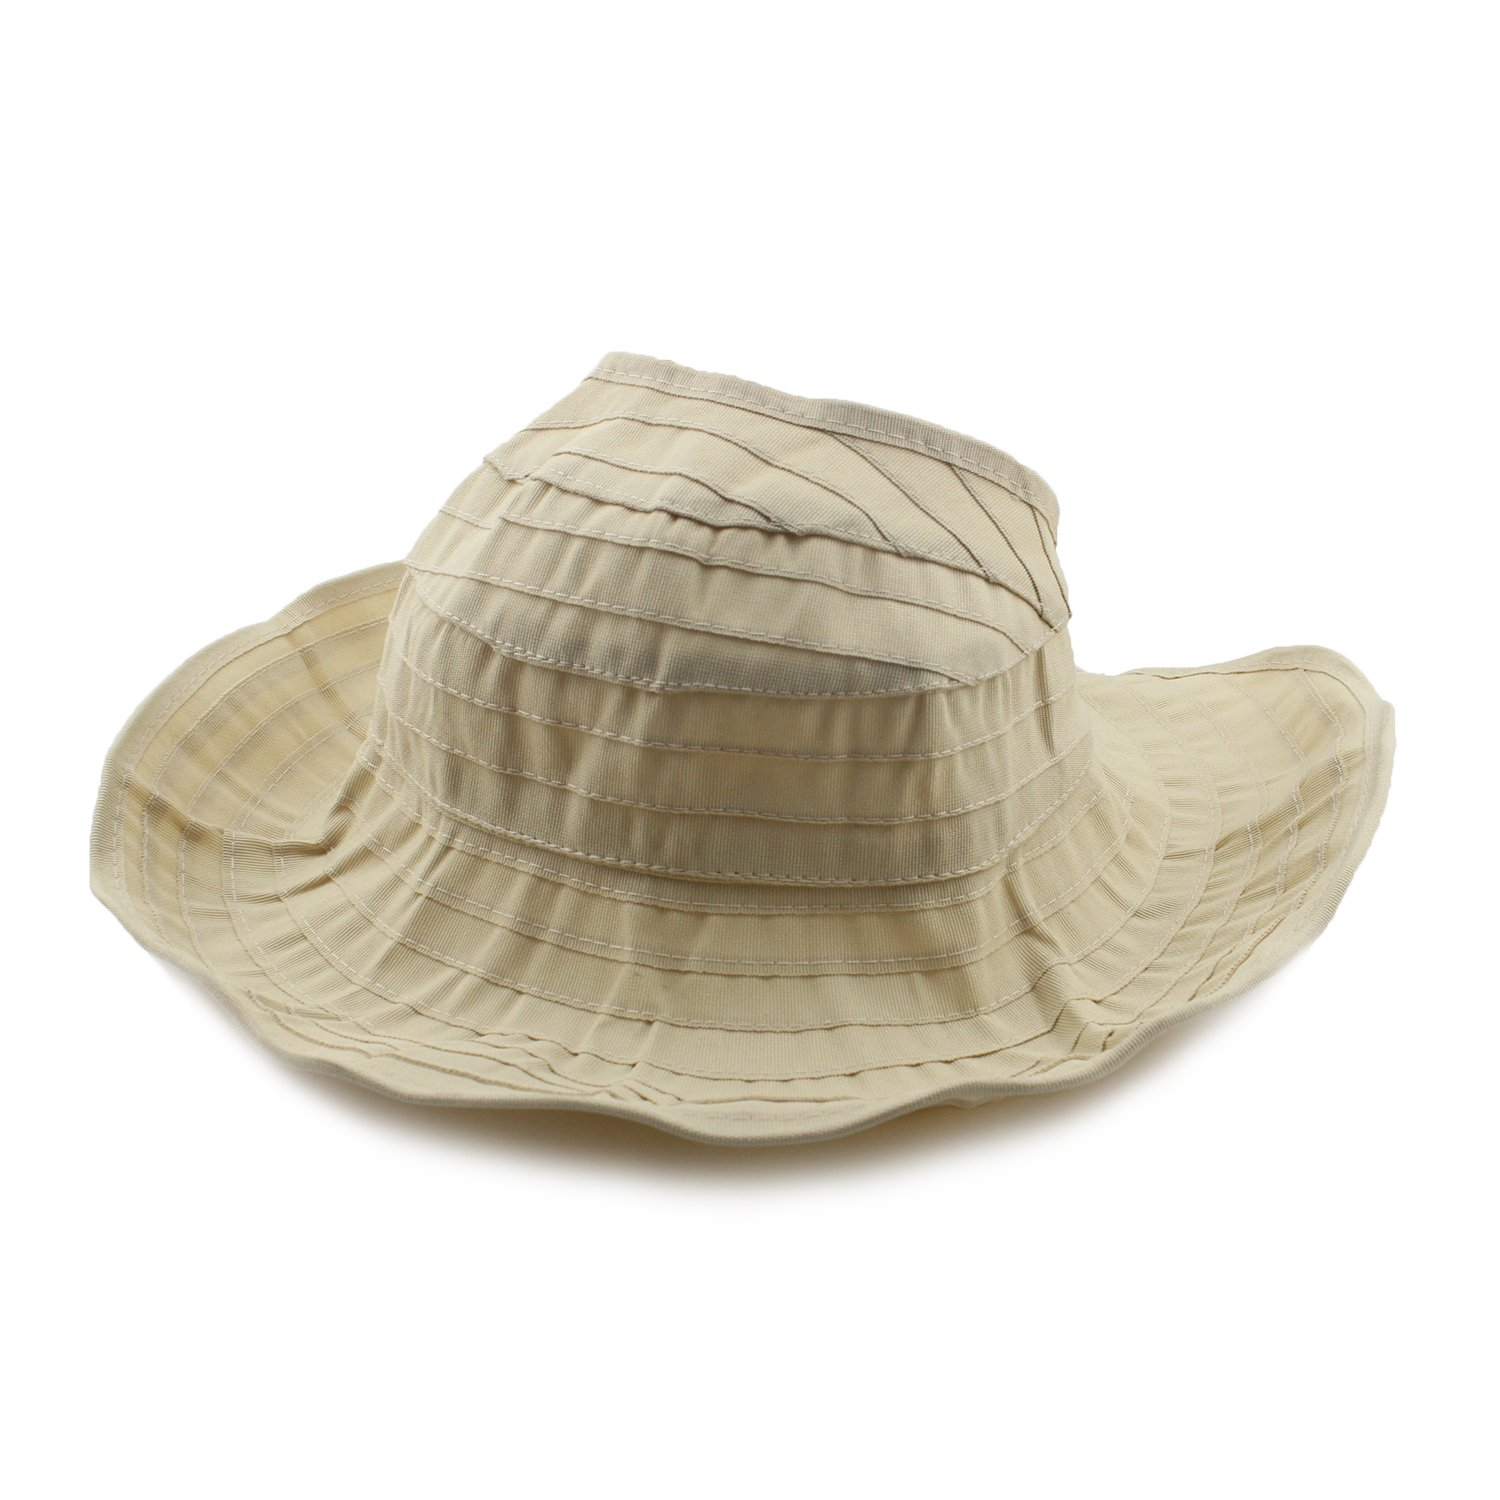 Womens Sun Hat SunJolly Portable Summer Wide Brim UV Protection Floppy Foldable Roll Up Beach Hat and 2PCS Parent-Child Hat for Travel (Women, Beige)